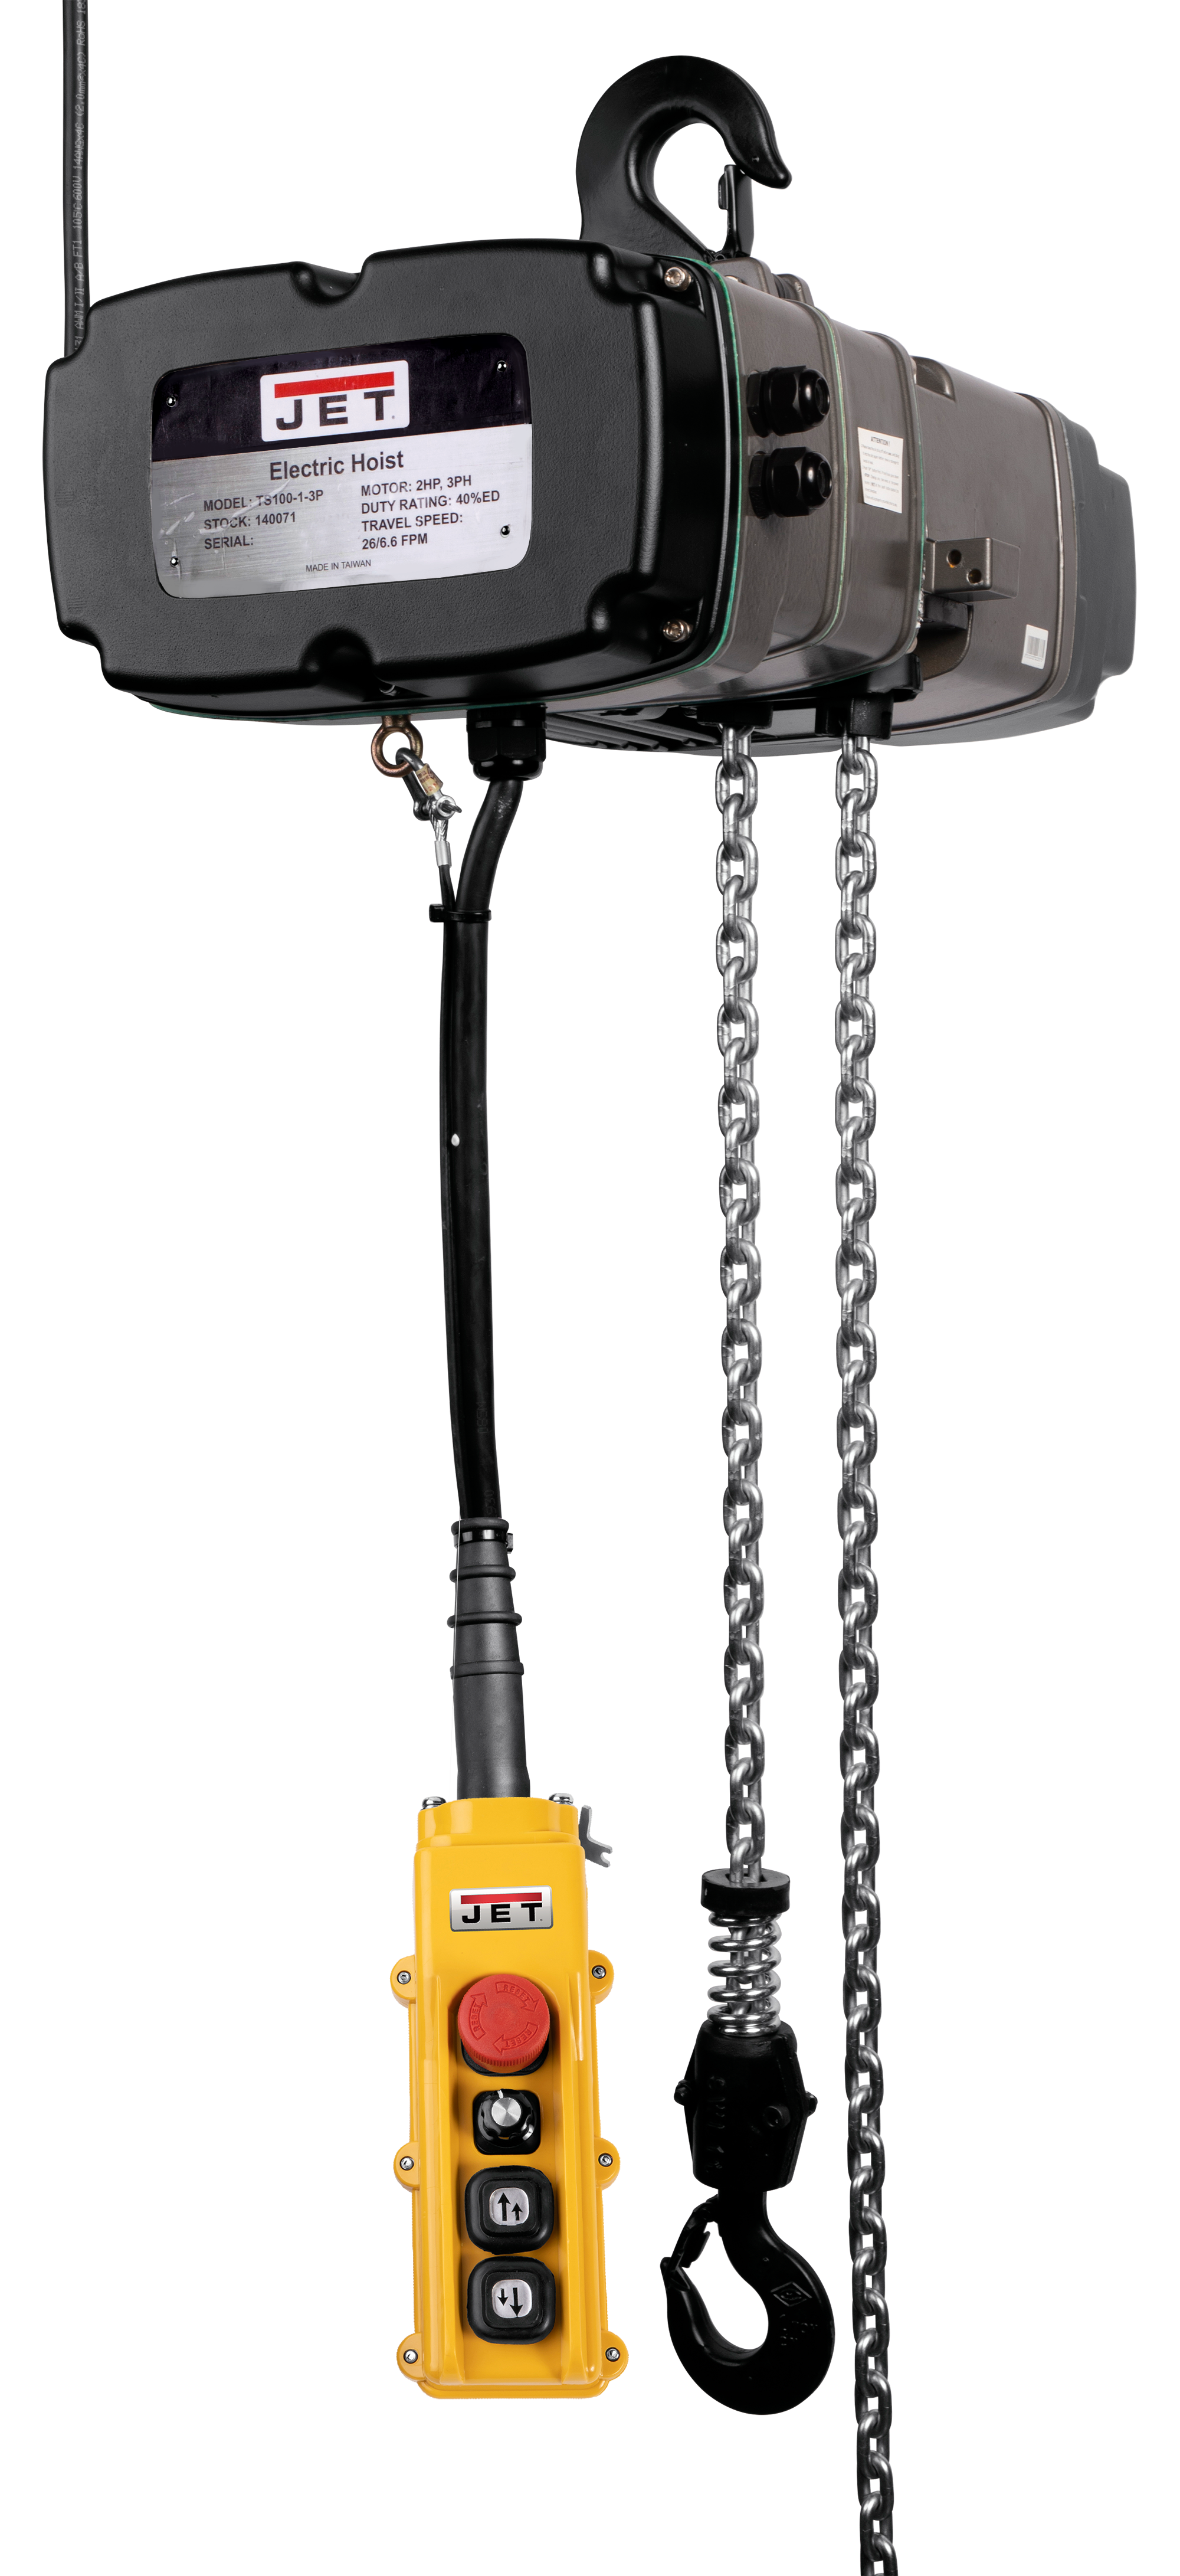 TS200-230-010,2-Ton Two Speed Electric Chain Hoist  3-Phase 10' Lift